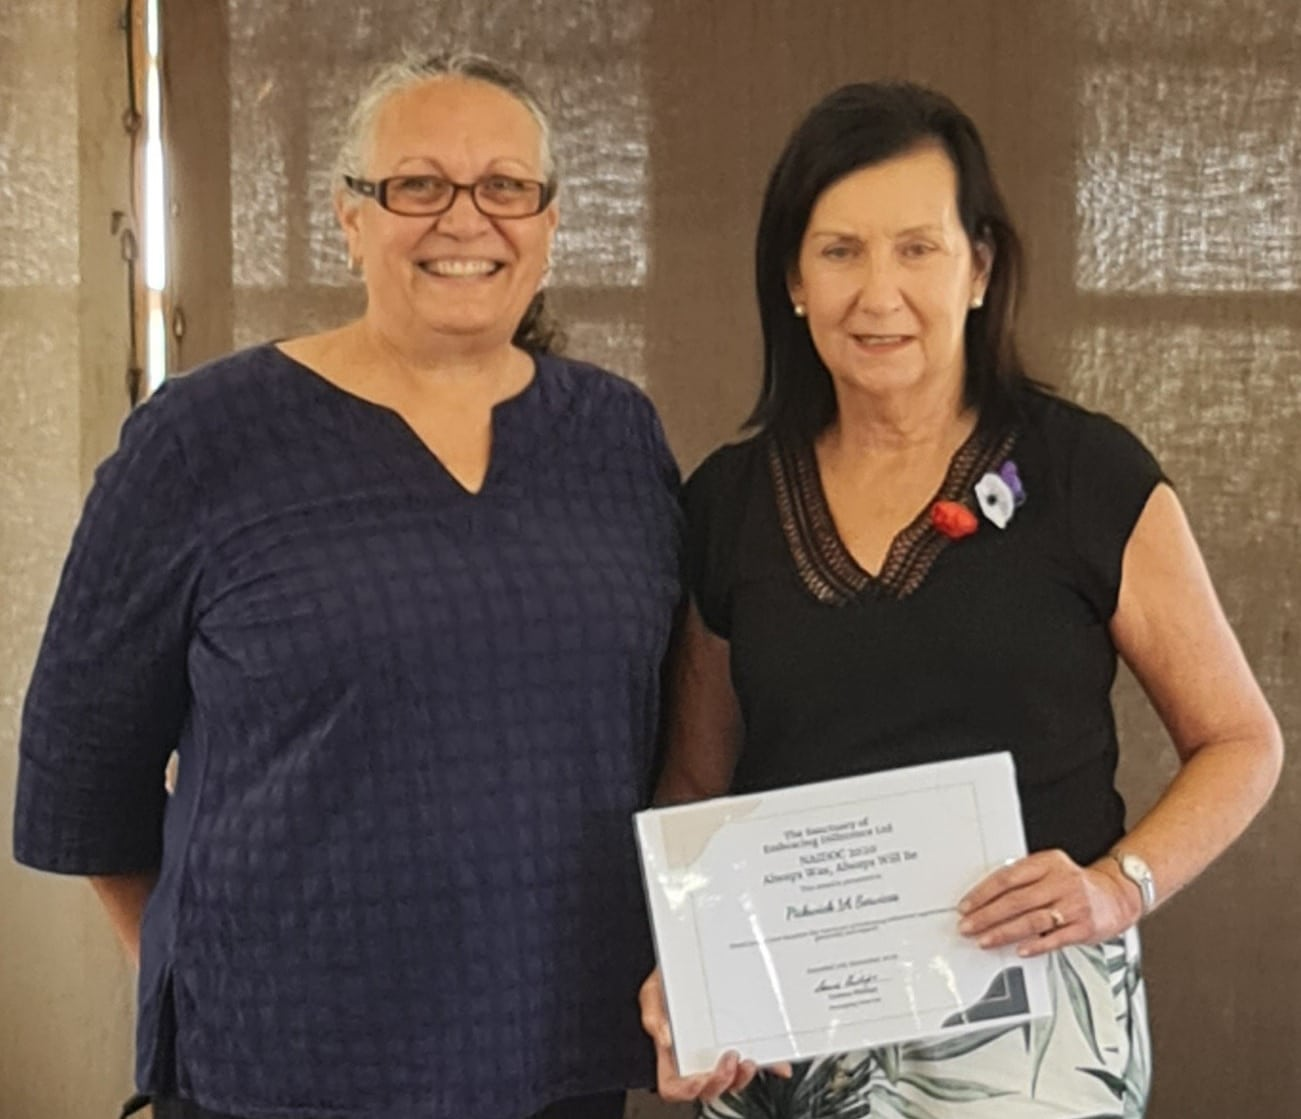 Leanne Phillips (L), P1A Chairperson and TSOED Founder with Carol Malone, Owner of P1A.